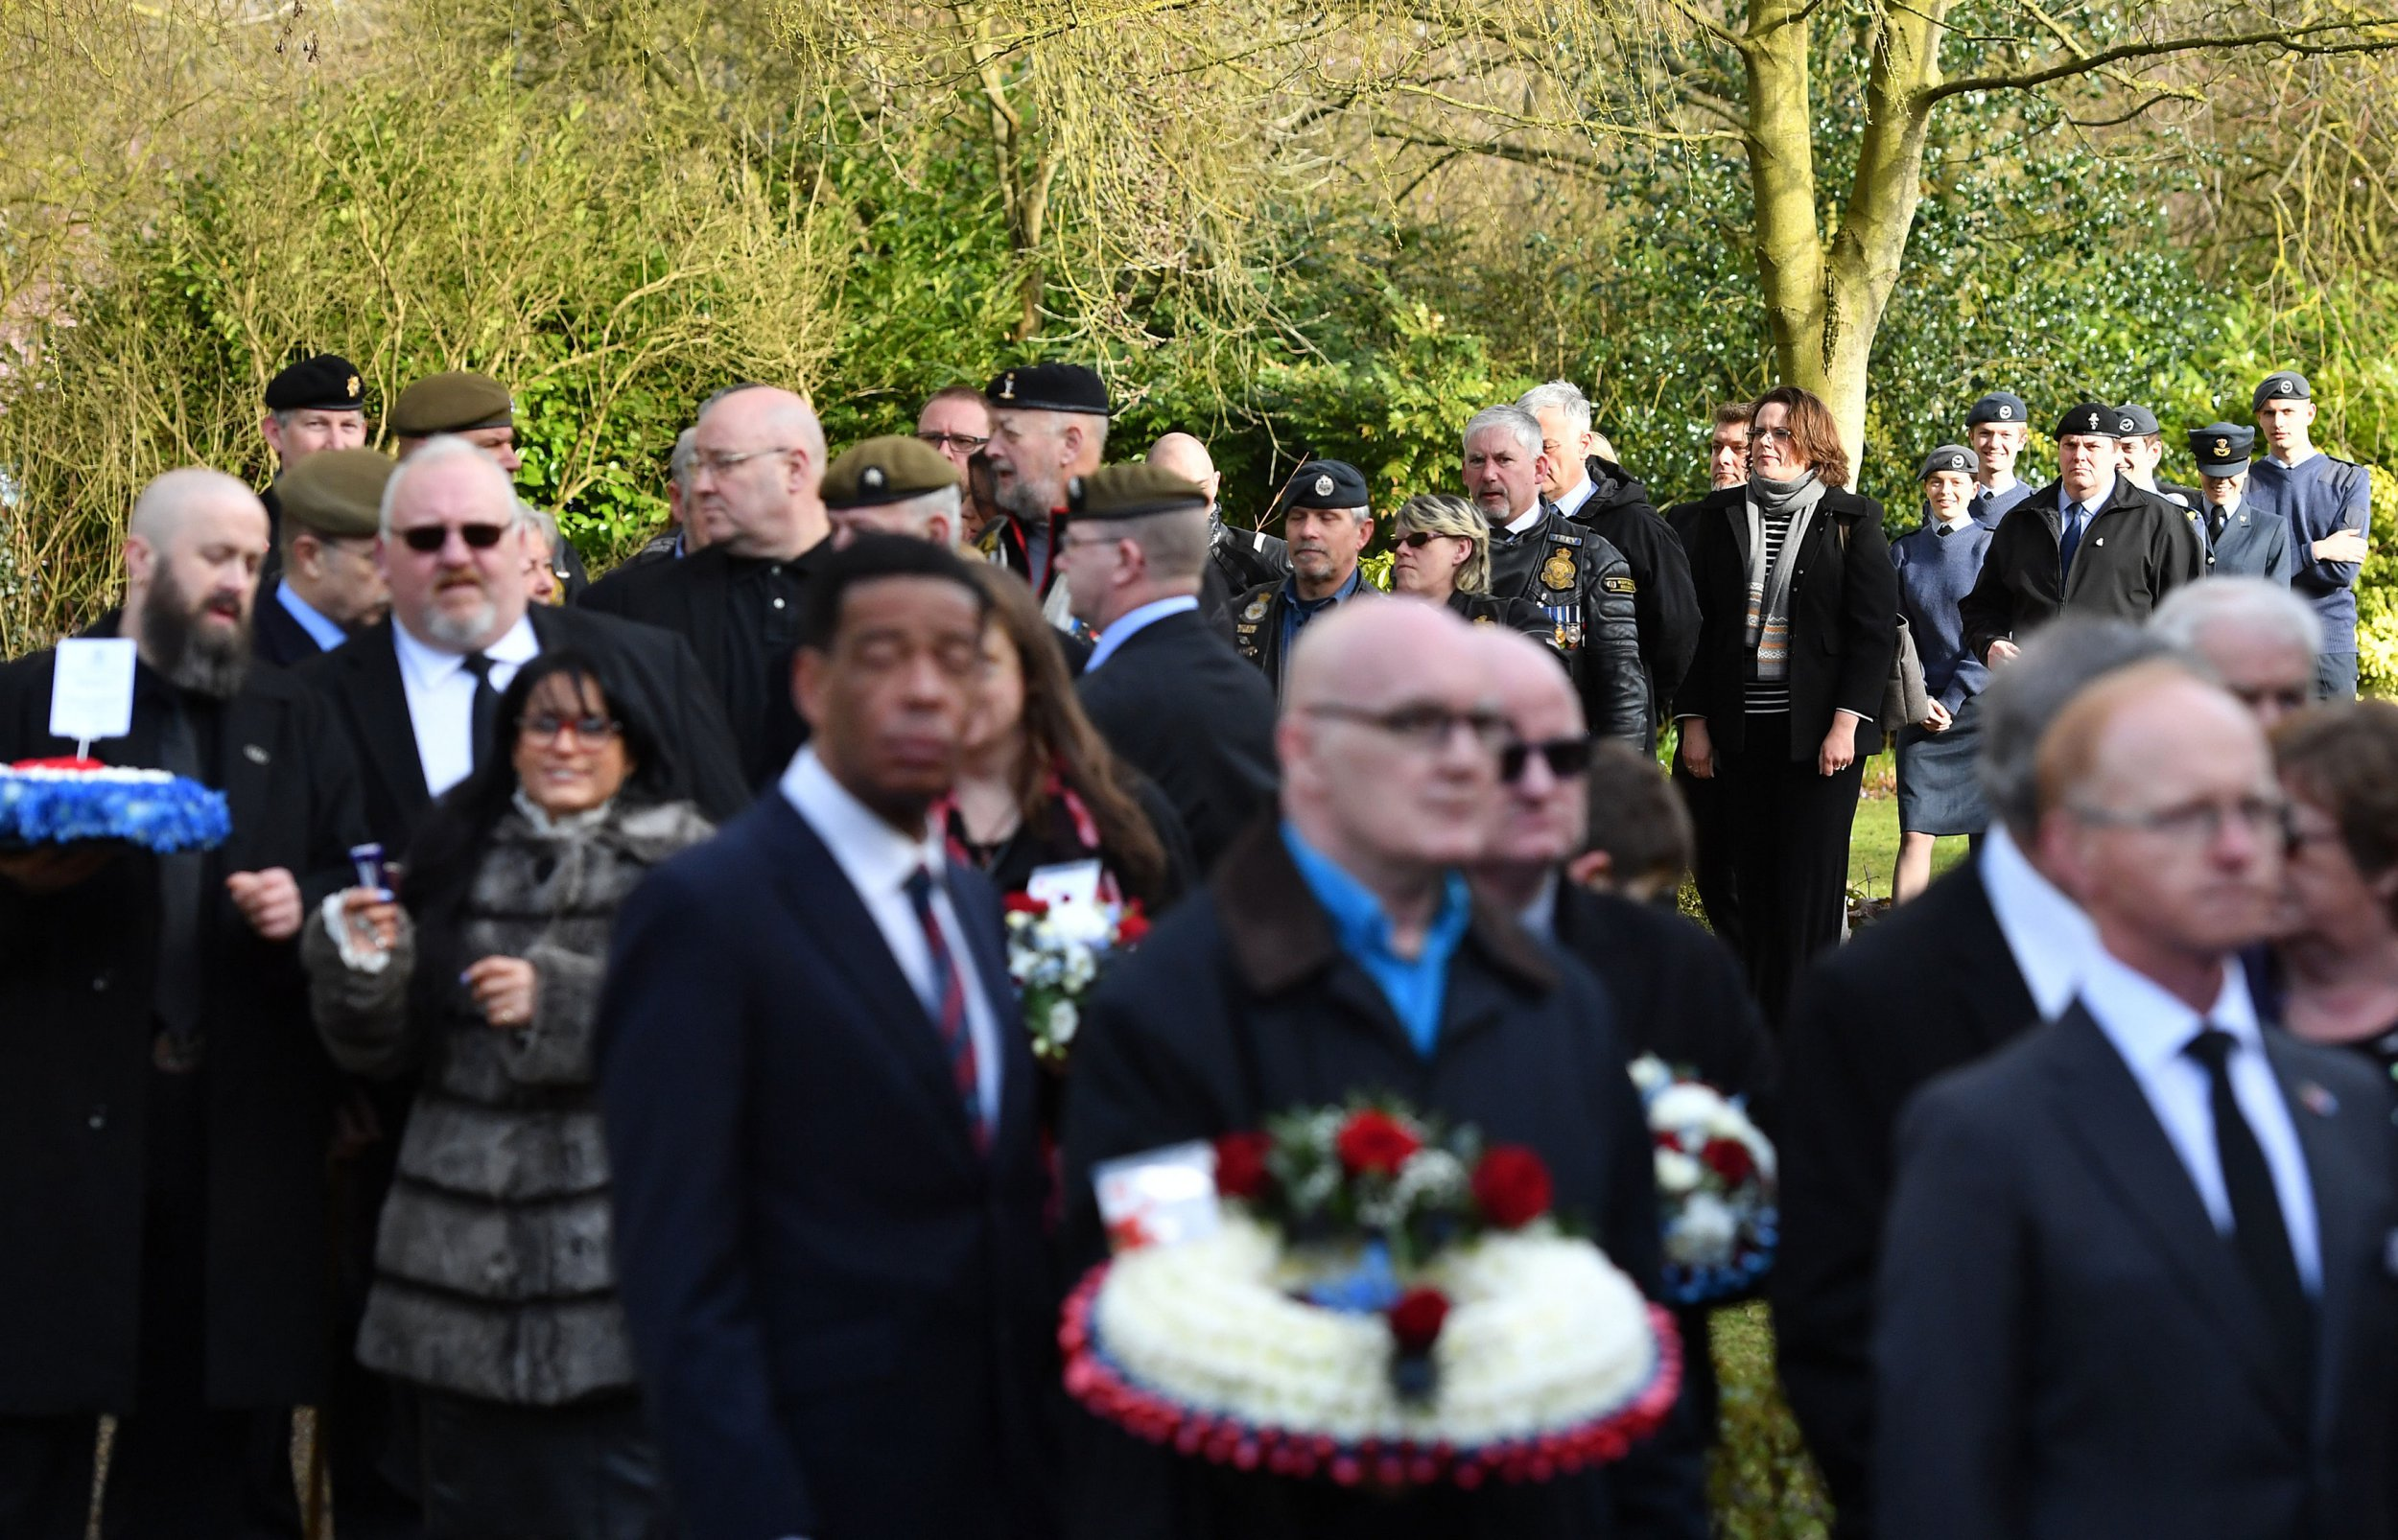 Mourners attend the funeral of Kenneth White, an RAF veteran who died with no known family, at Cambridge City Crematorium. PRESS ASSOCIATION Photo. Picture date: Monday March 26, 2018. A Facebook appeal was launched for people to attend the funeral of Mr White, who died at the age of 84. See PA story FUNERAL Veteran. Photo credit should read: Joe Giddens/PA Wire